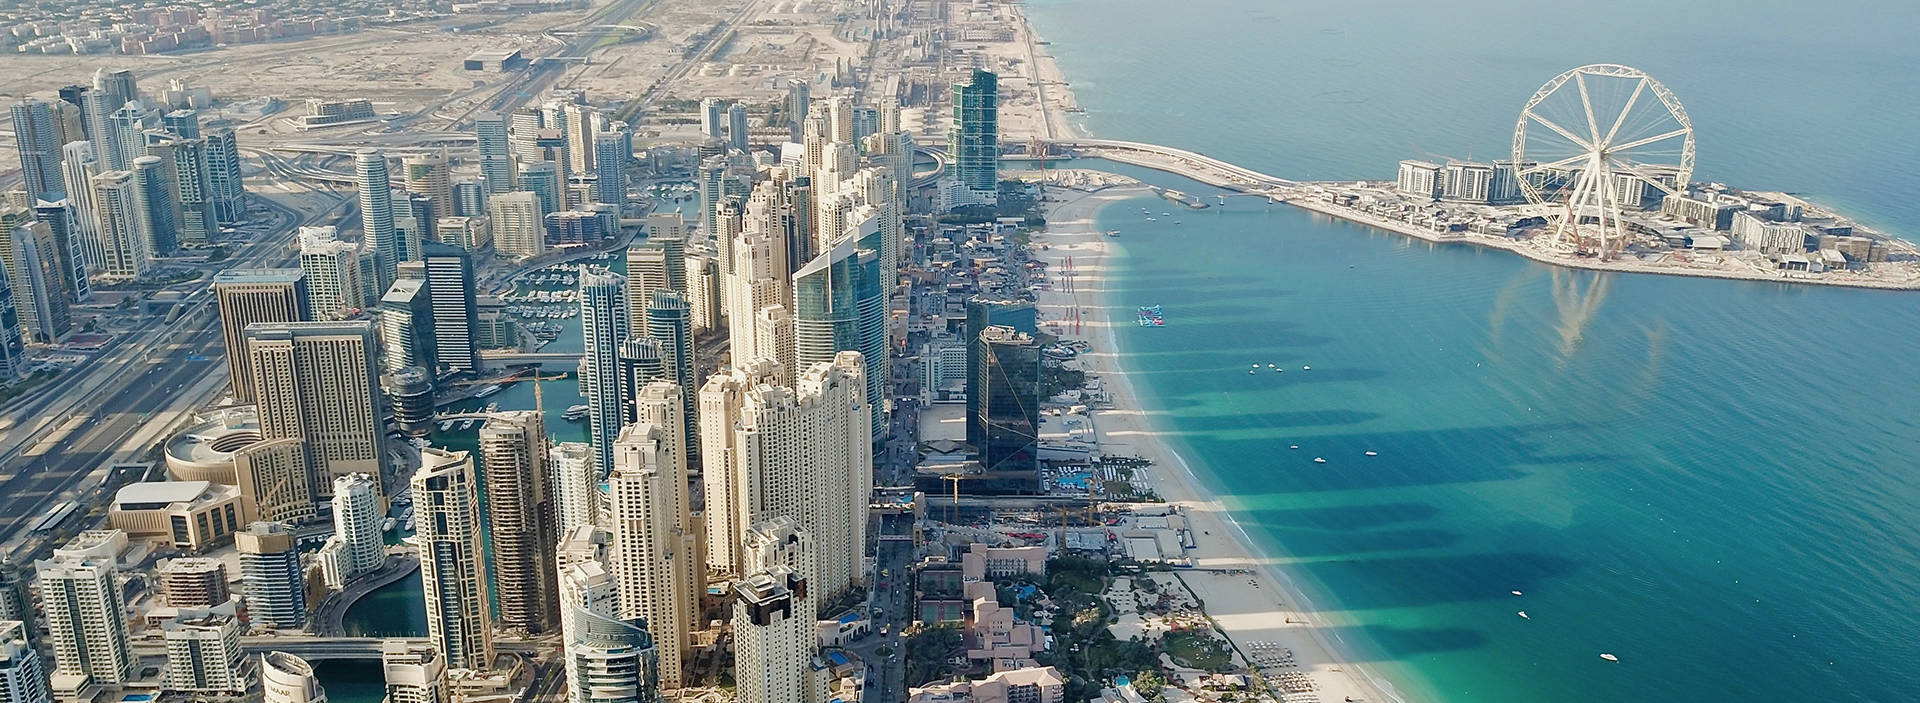 JBR drone one view